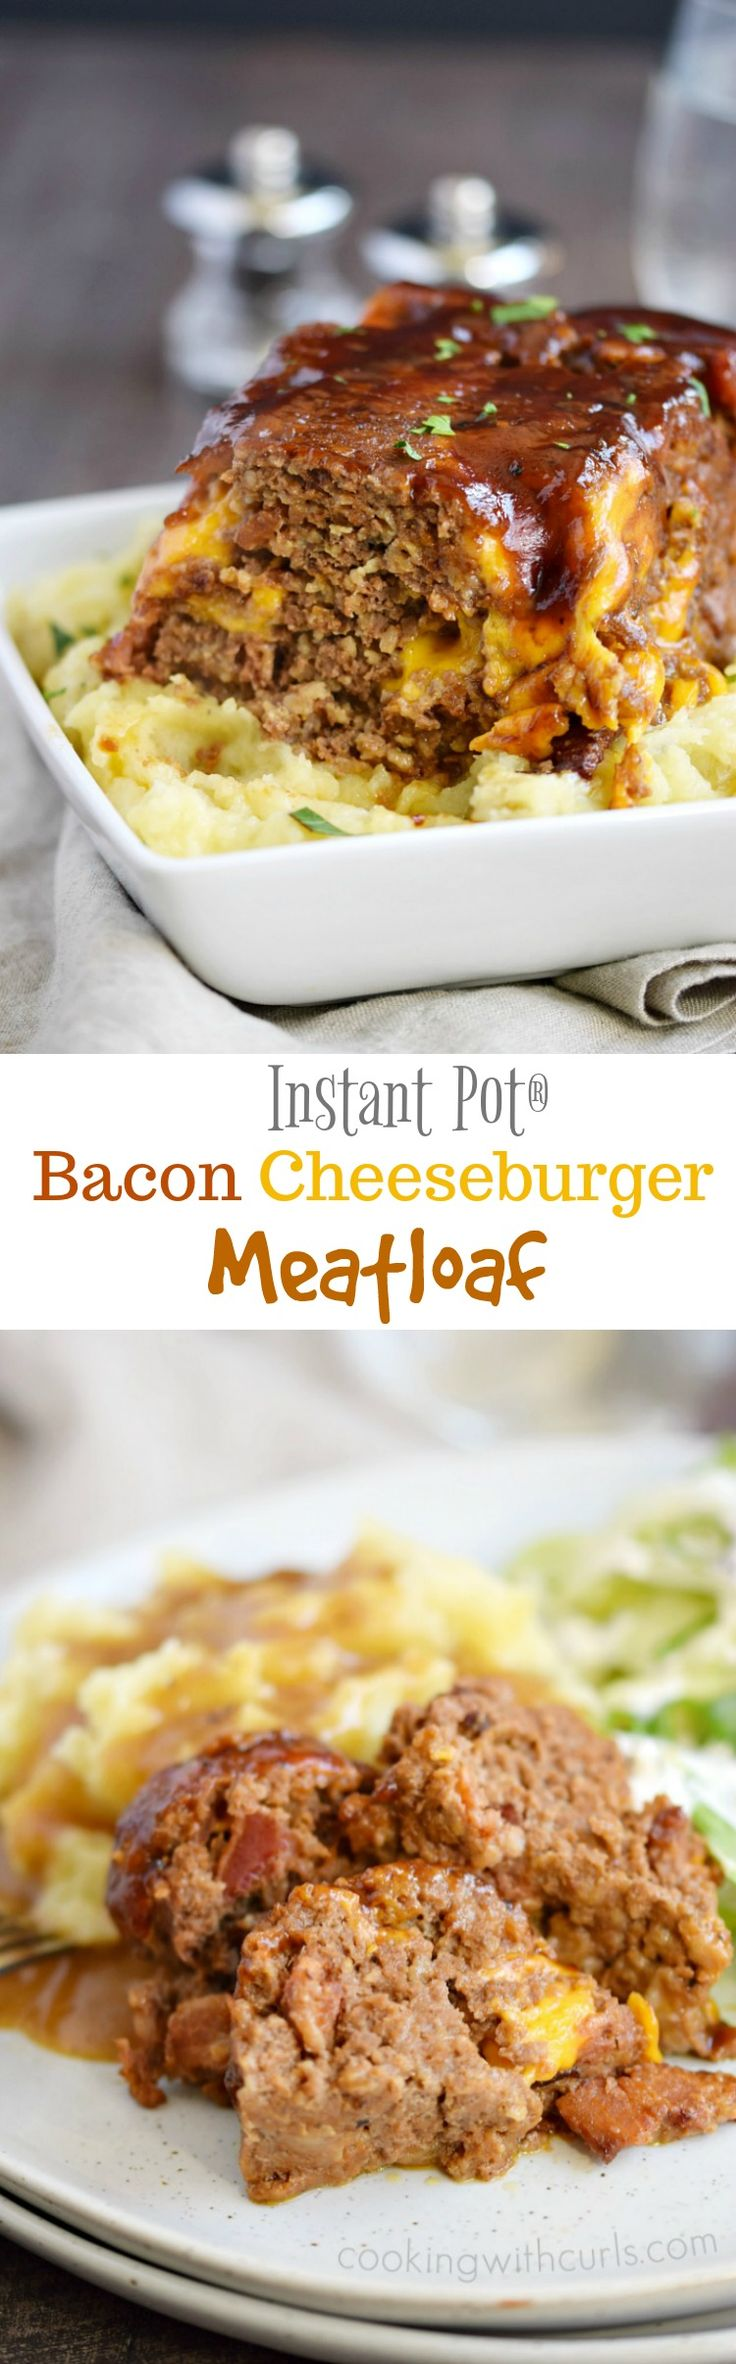 You will not believe how easy this Instant Pot Bacon Cheeseburger Meatloaf meal is to make, and it even includes mashed potatoes and gravy! Gluten-free option | cookingwithcurls.com